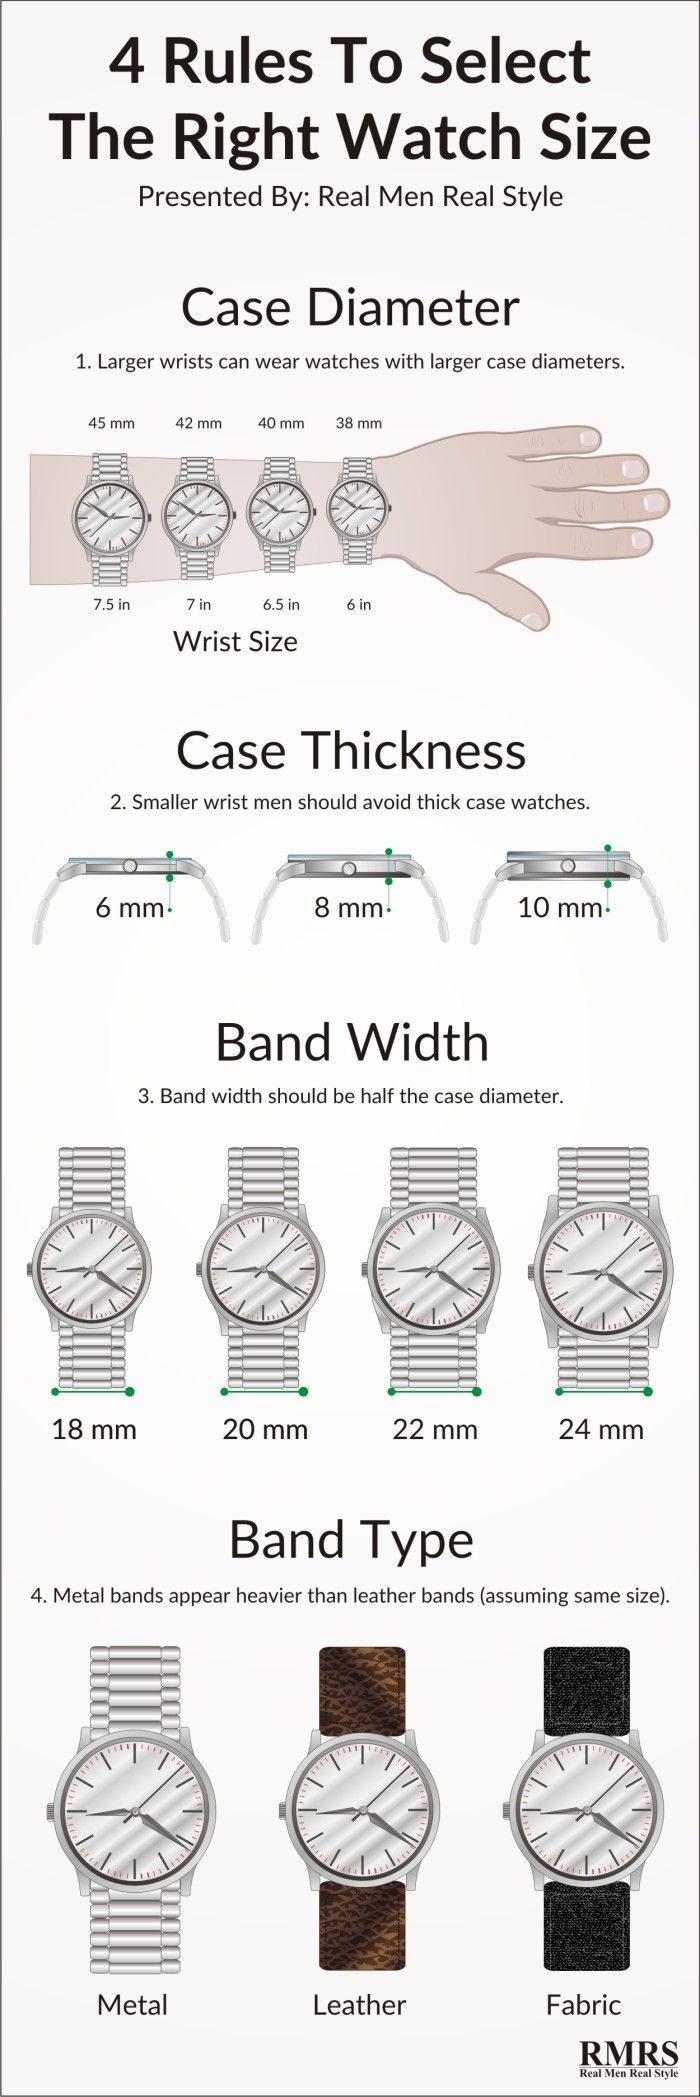 How To Buy The Right Sized Watch | Shop our range of watches at TheIdleMan.com | #StyleMadeEasy